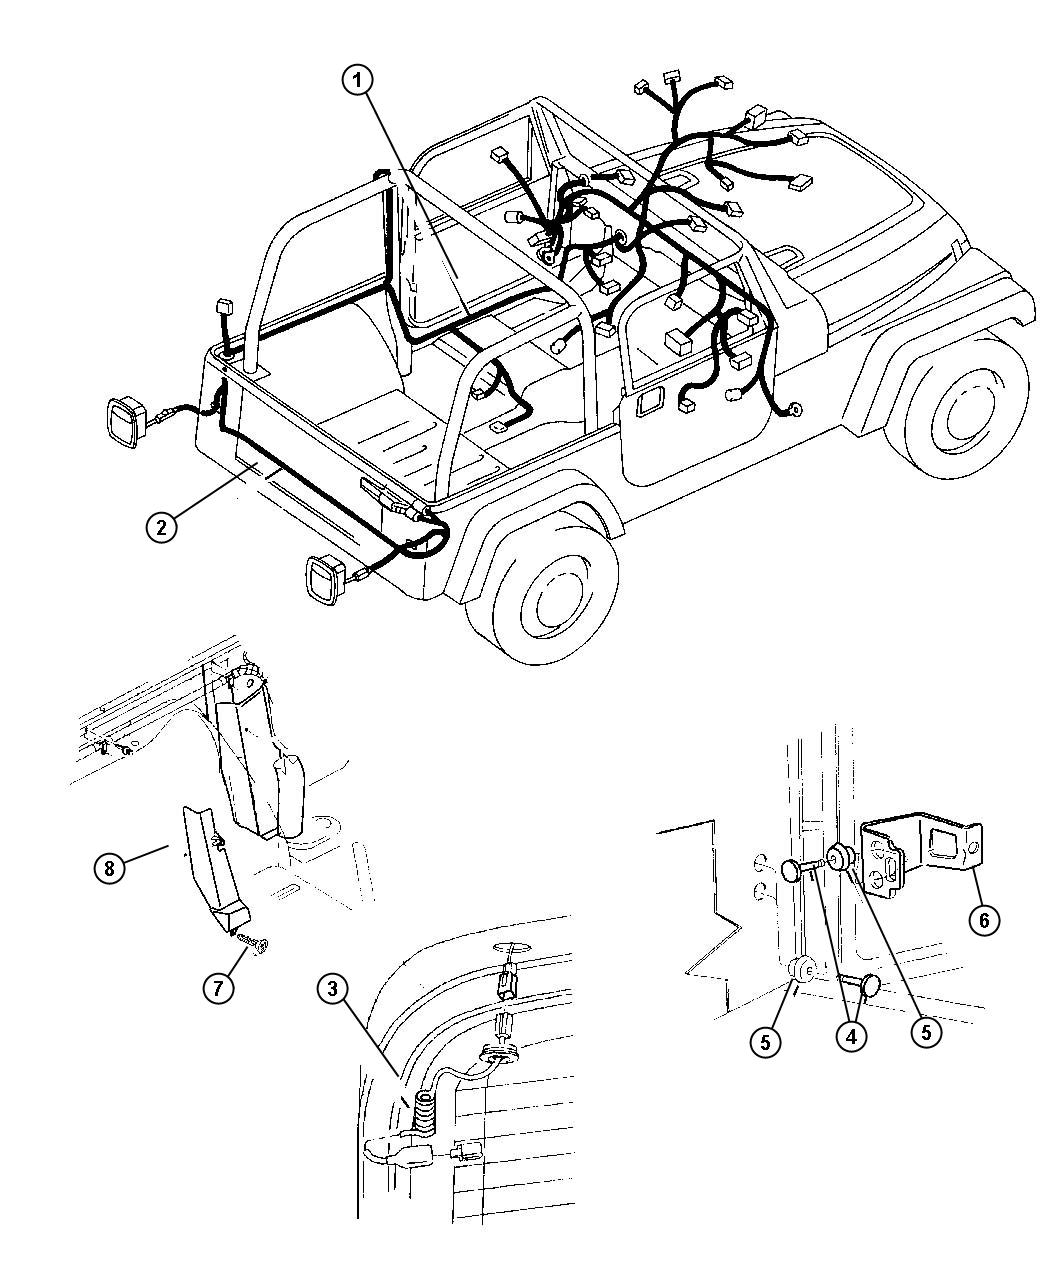 72 Jeep Cj5 Wiring Diagram on ford brake proportioning valve diagram